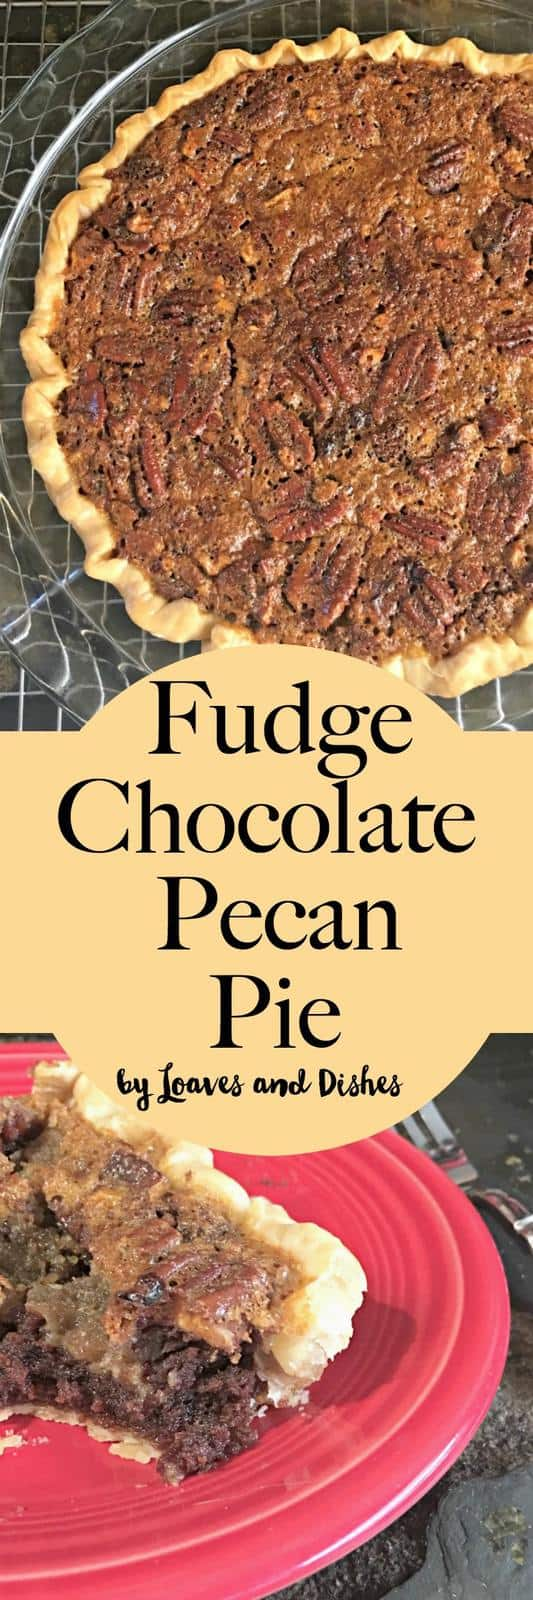 Simple Southern Living type recipe for Easy Chocolate Pecan Pie that is very fudgy! Using pecans and delicious food!